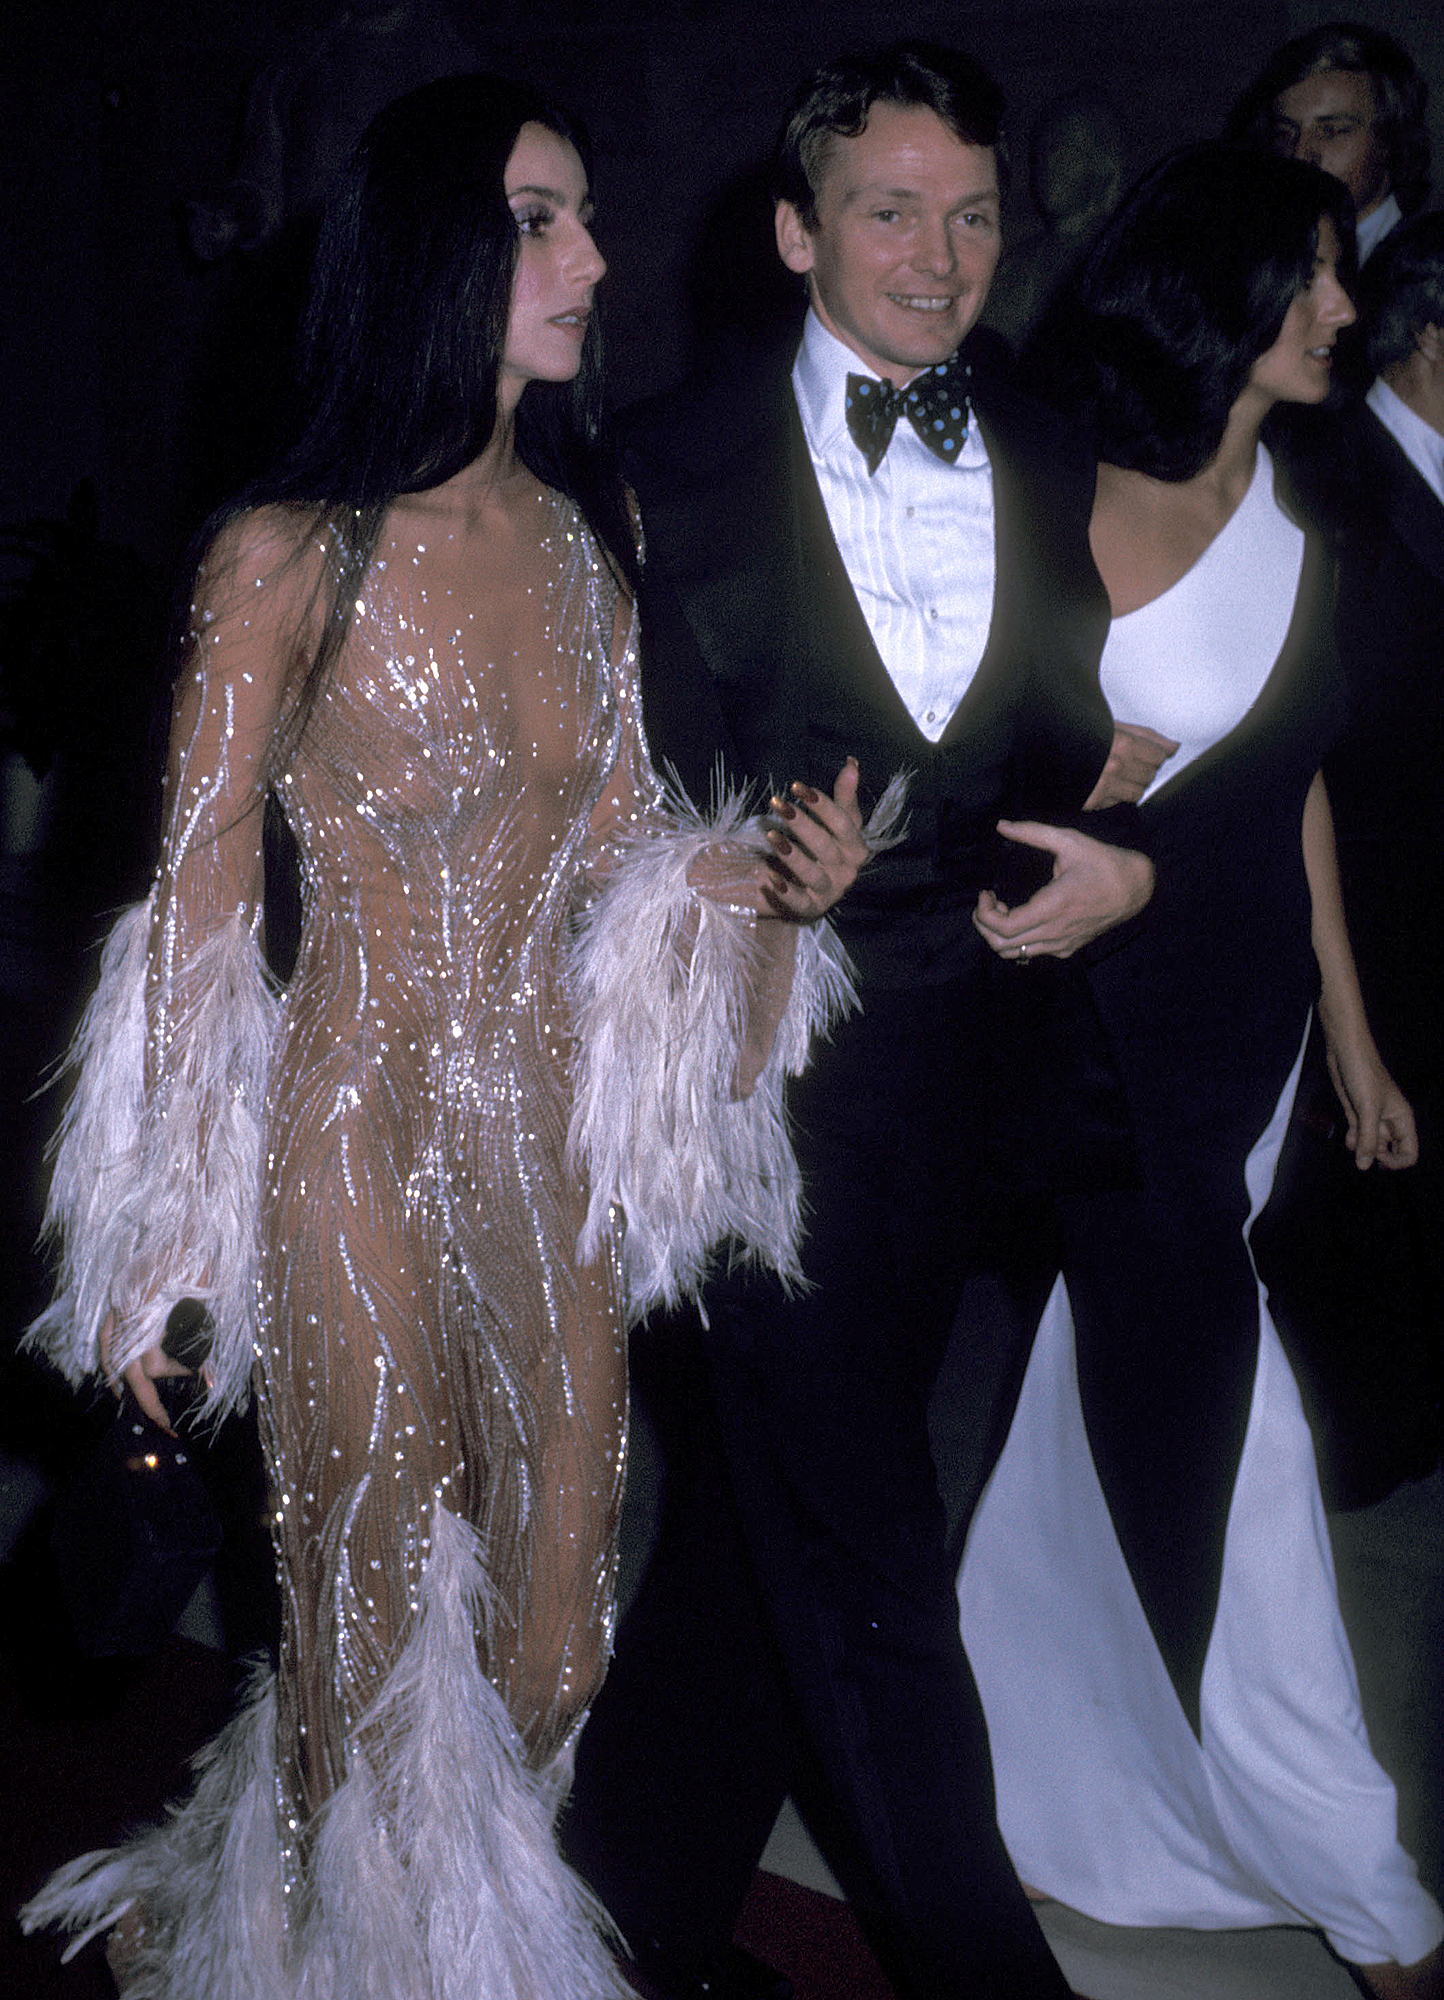 1974-cher - On the arm of the designer, the Moonstruck star stunned at the 3rd annual Met Gala in a sheer dress with white feathers and silver detailing.